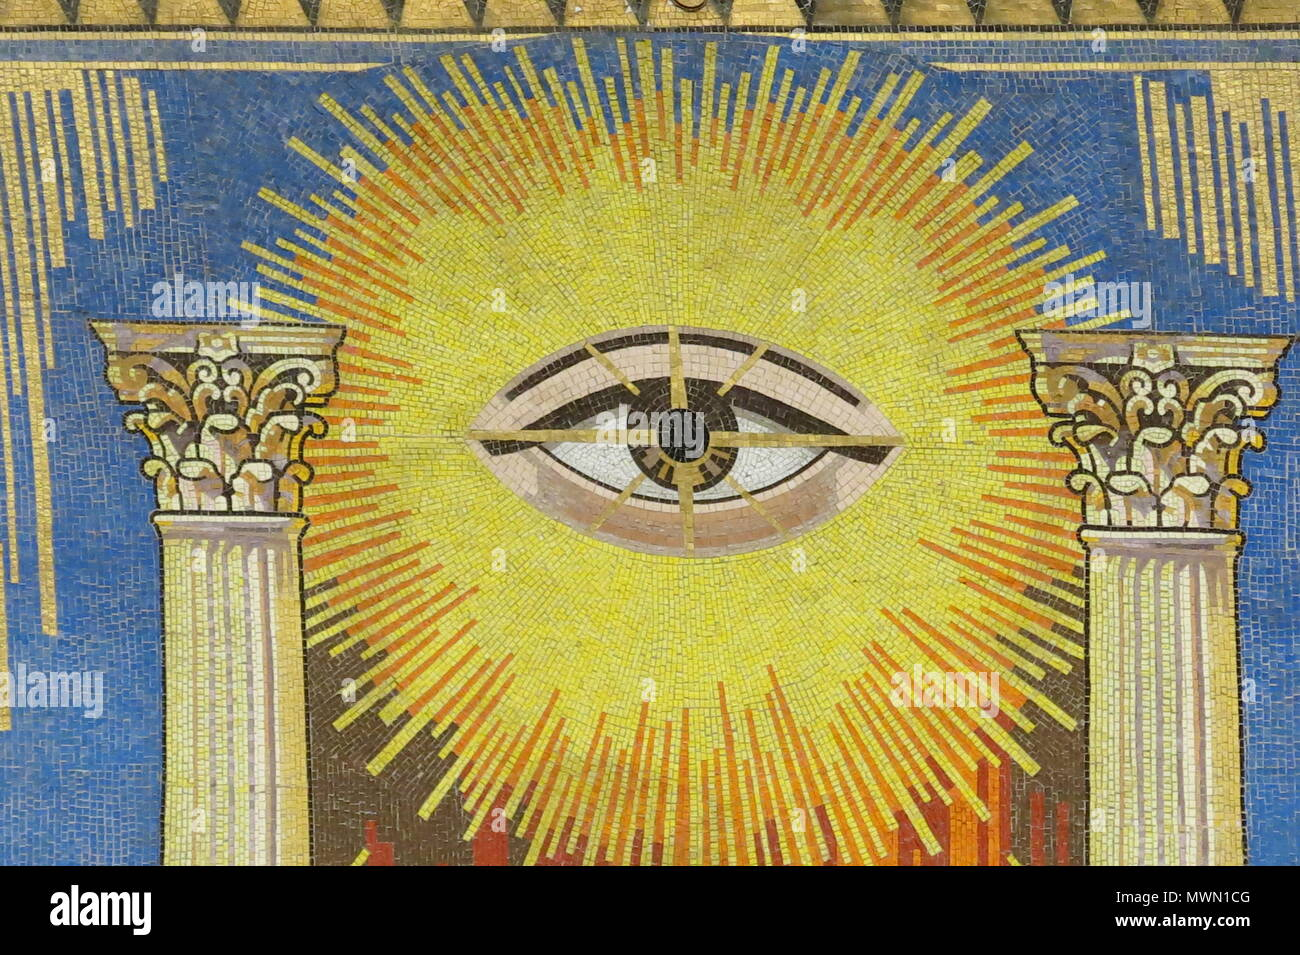 Close-up of the All-Seeing Eye and Corinthian pillars in the ceiling mosaic on the coving of the Grand Temple, Freemasons Hall, London - Stock Image